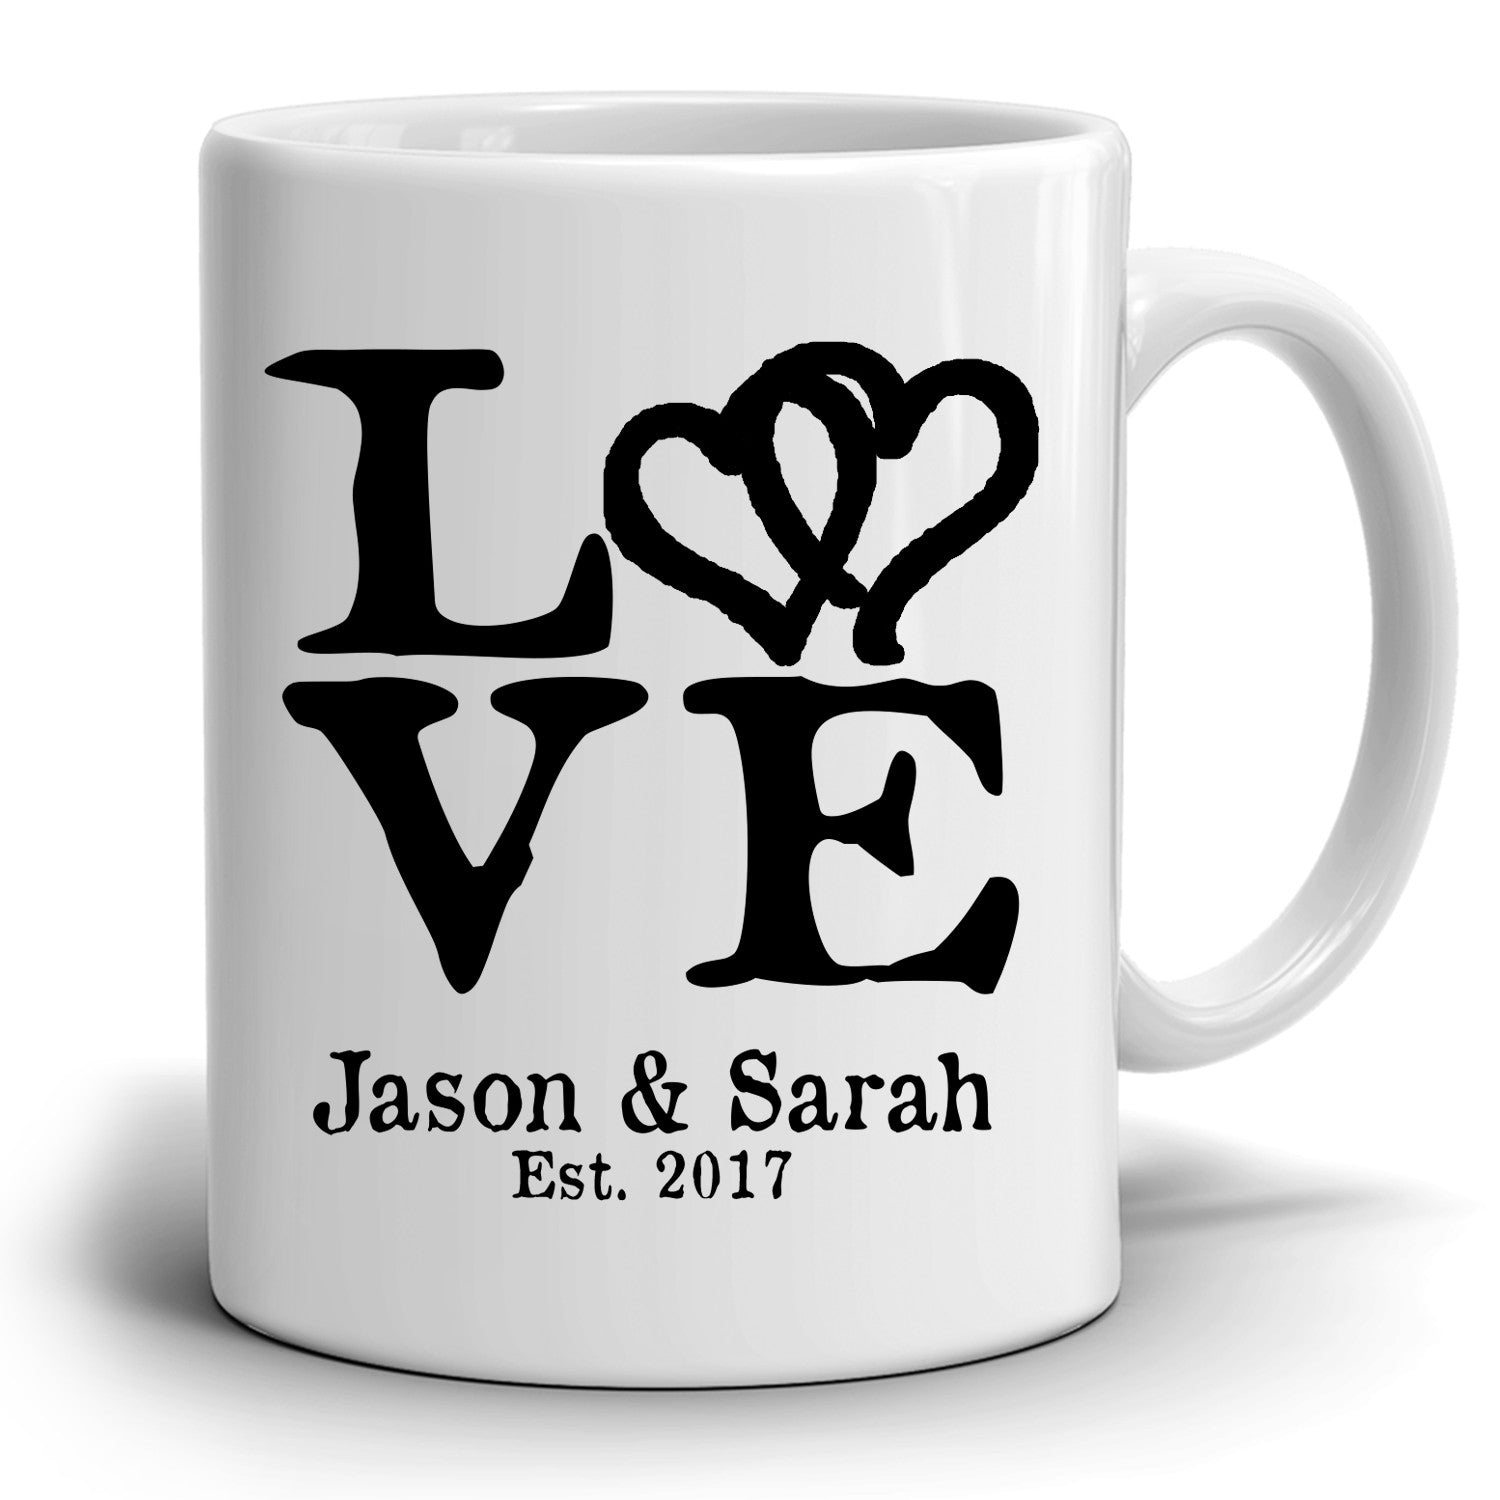 Best Gift For Wedding Anniversary For Husband: Personalized Romantic Love Husband And Wife Names Gift